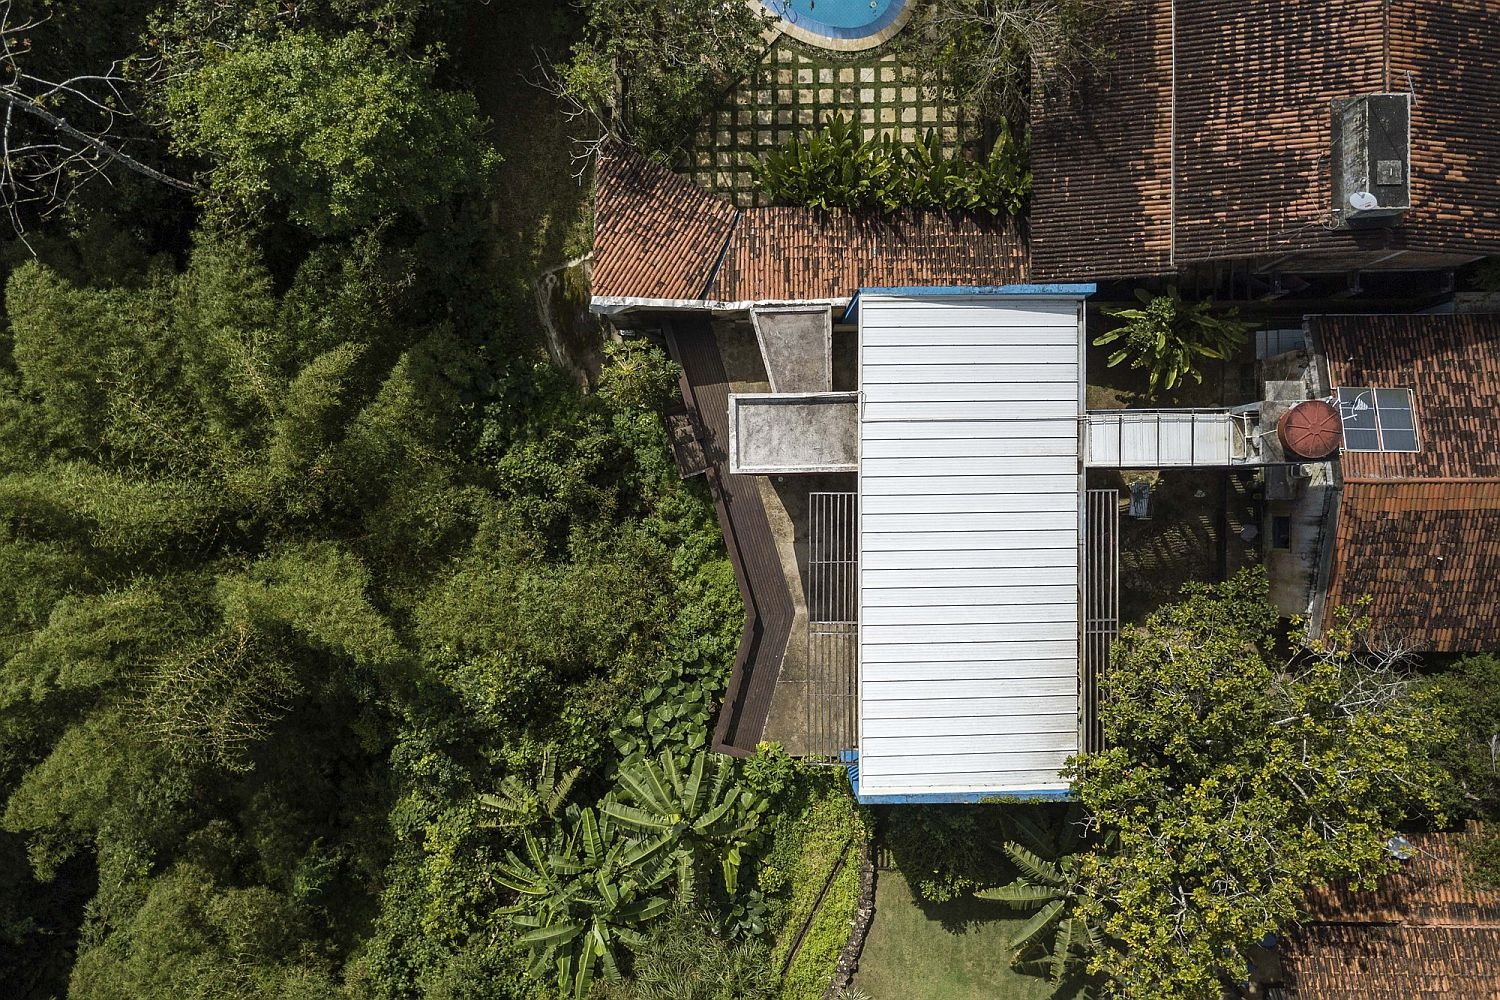 View from the sky of the extended modern house in Brazils surrounded by jungles